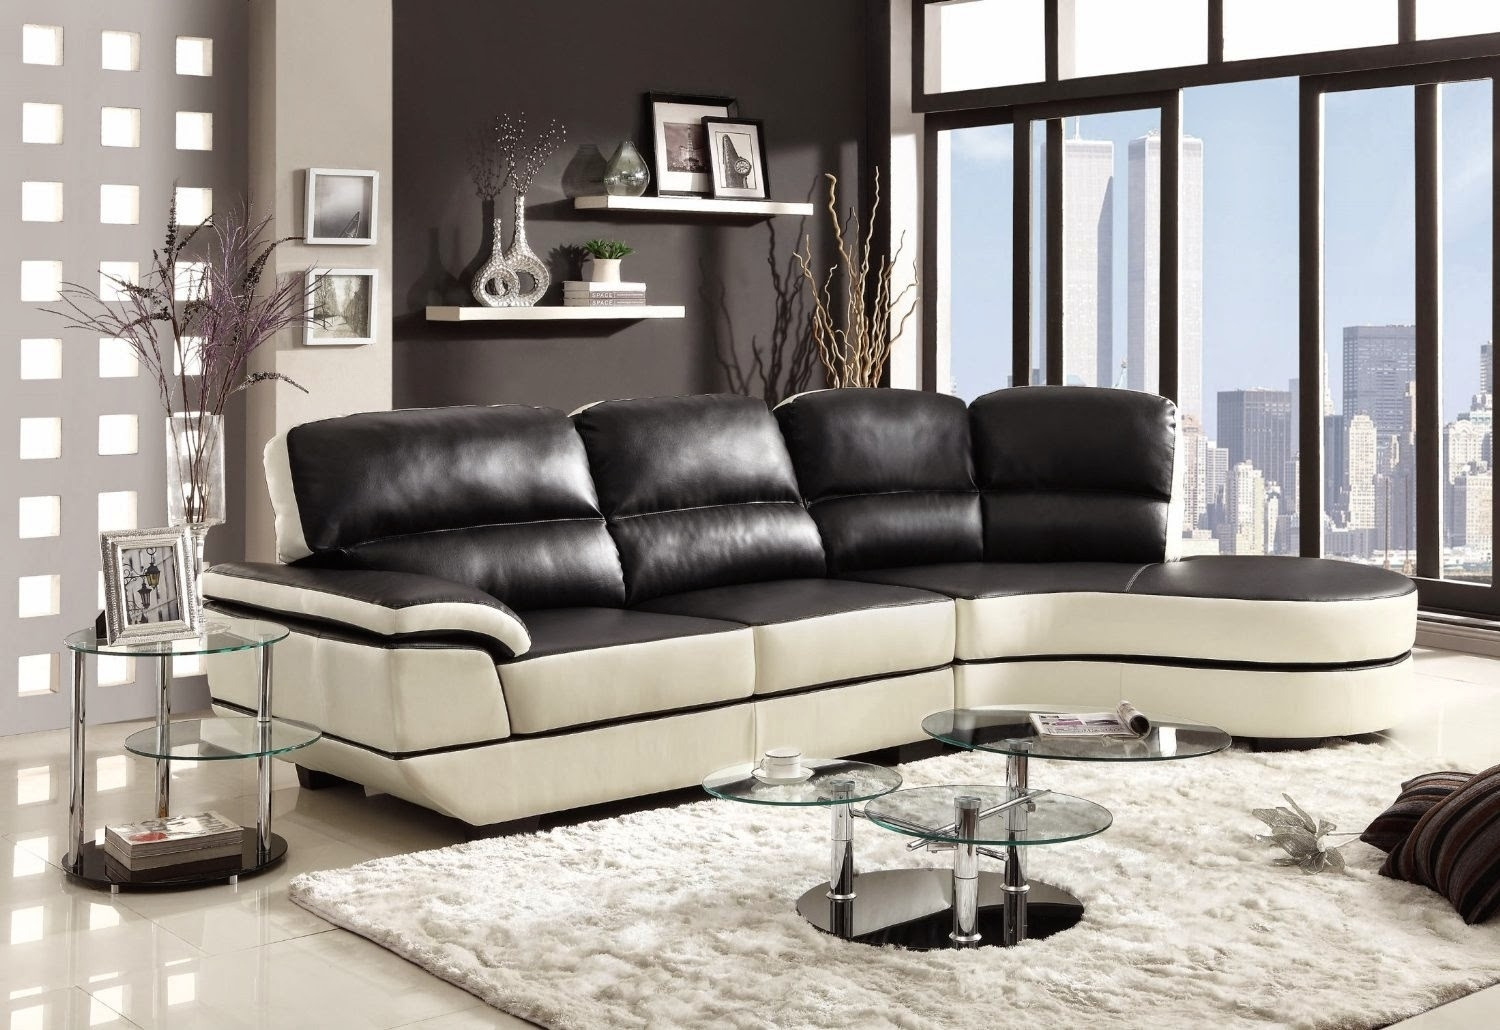 Furniture : Sectional Sofa Ebay Corner Couch 6 Seater 4 Recliner Intended For 100X80 Sectional Sofas (Image 6 of 10)